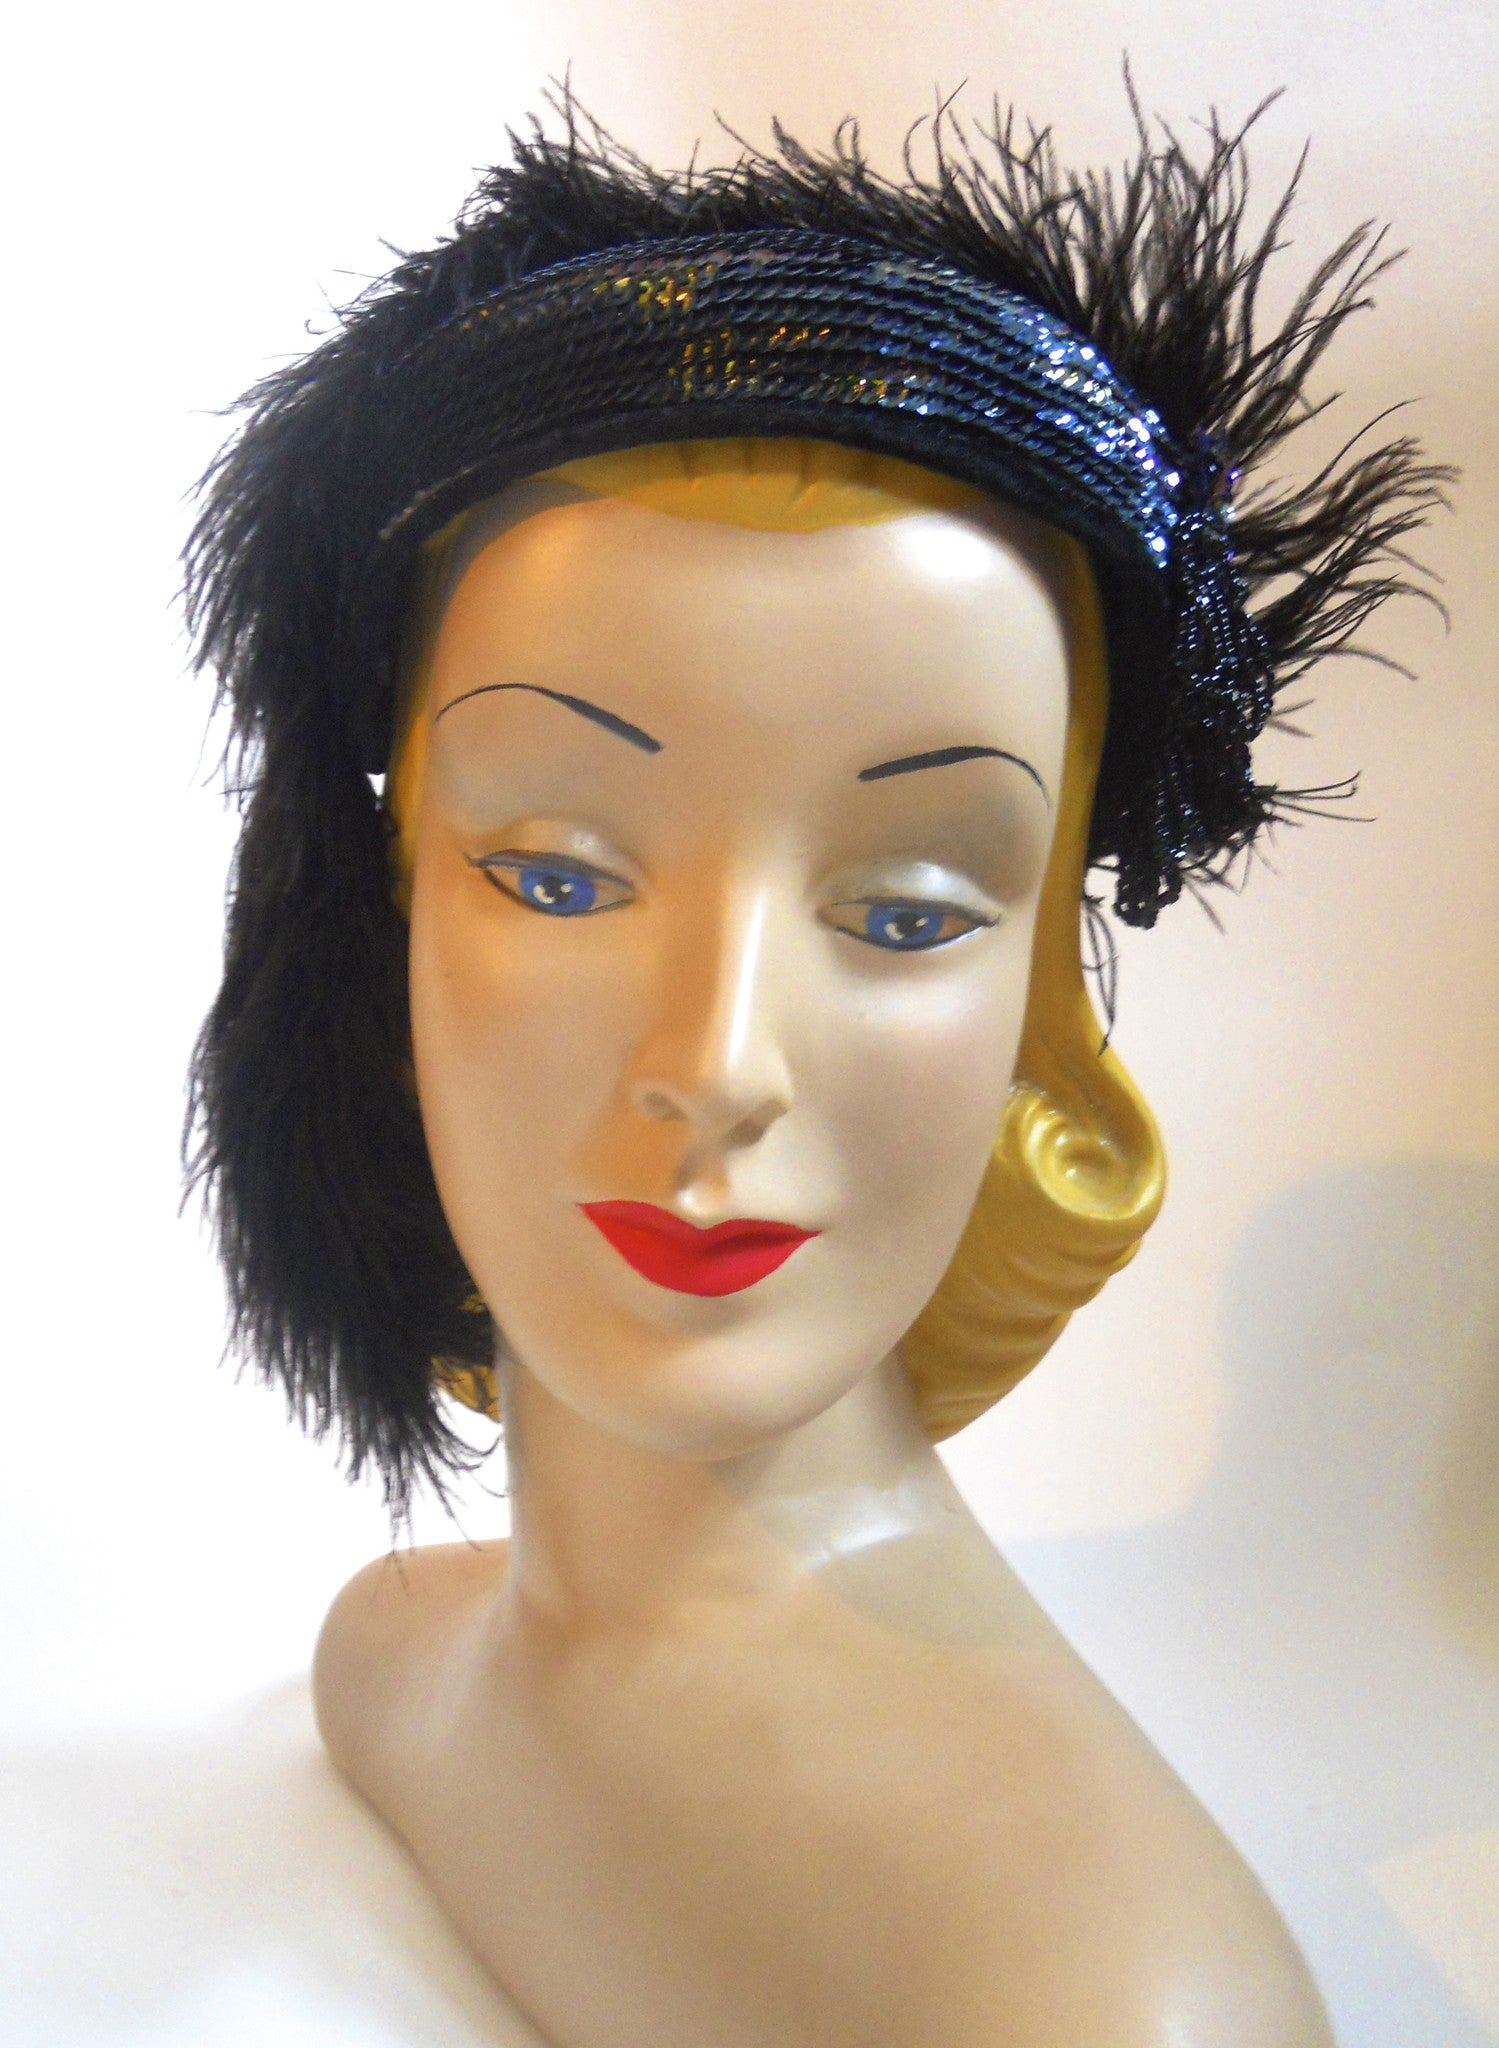 Marabou and Sequins Showgirl Style Hat circa 1960s